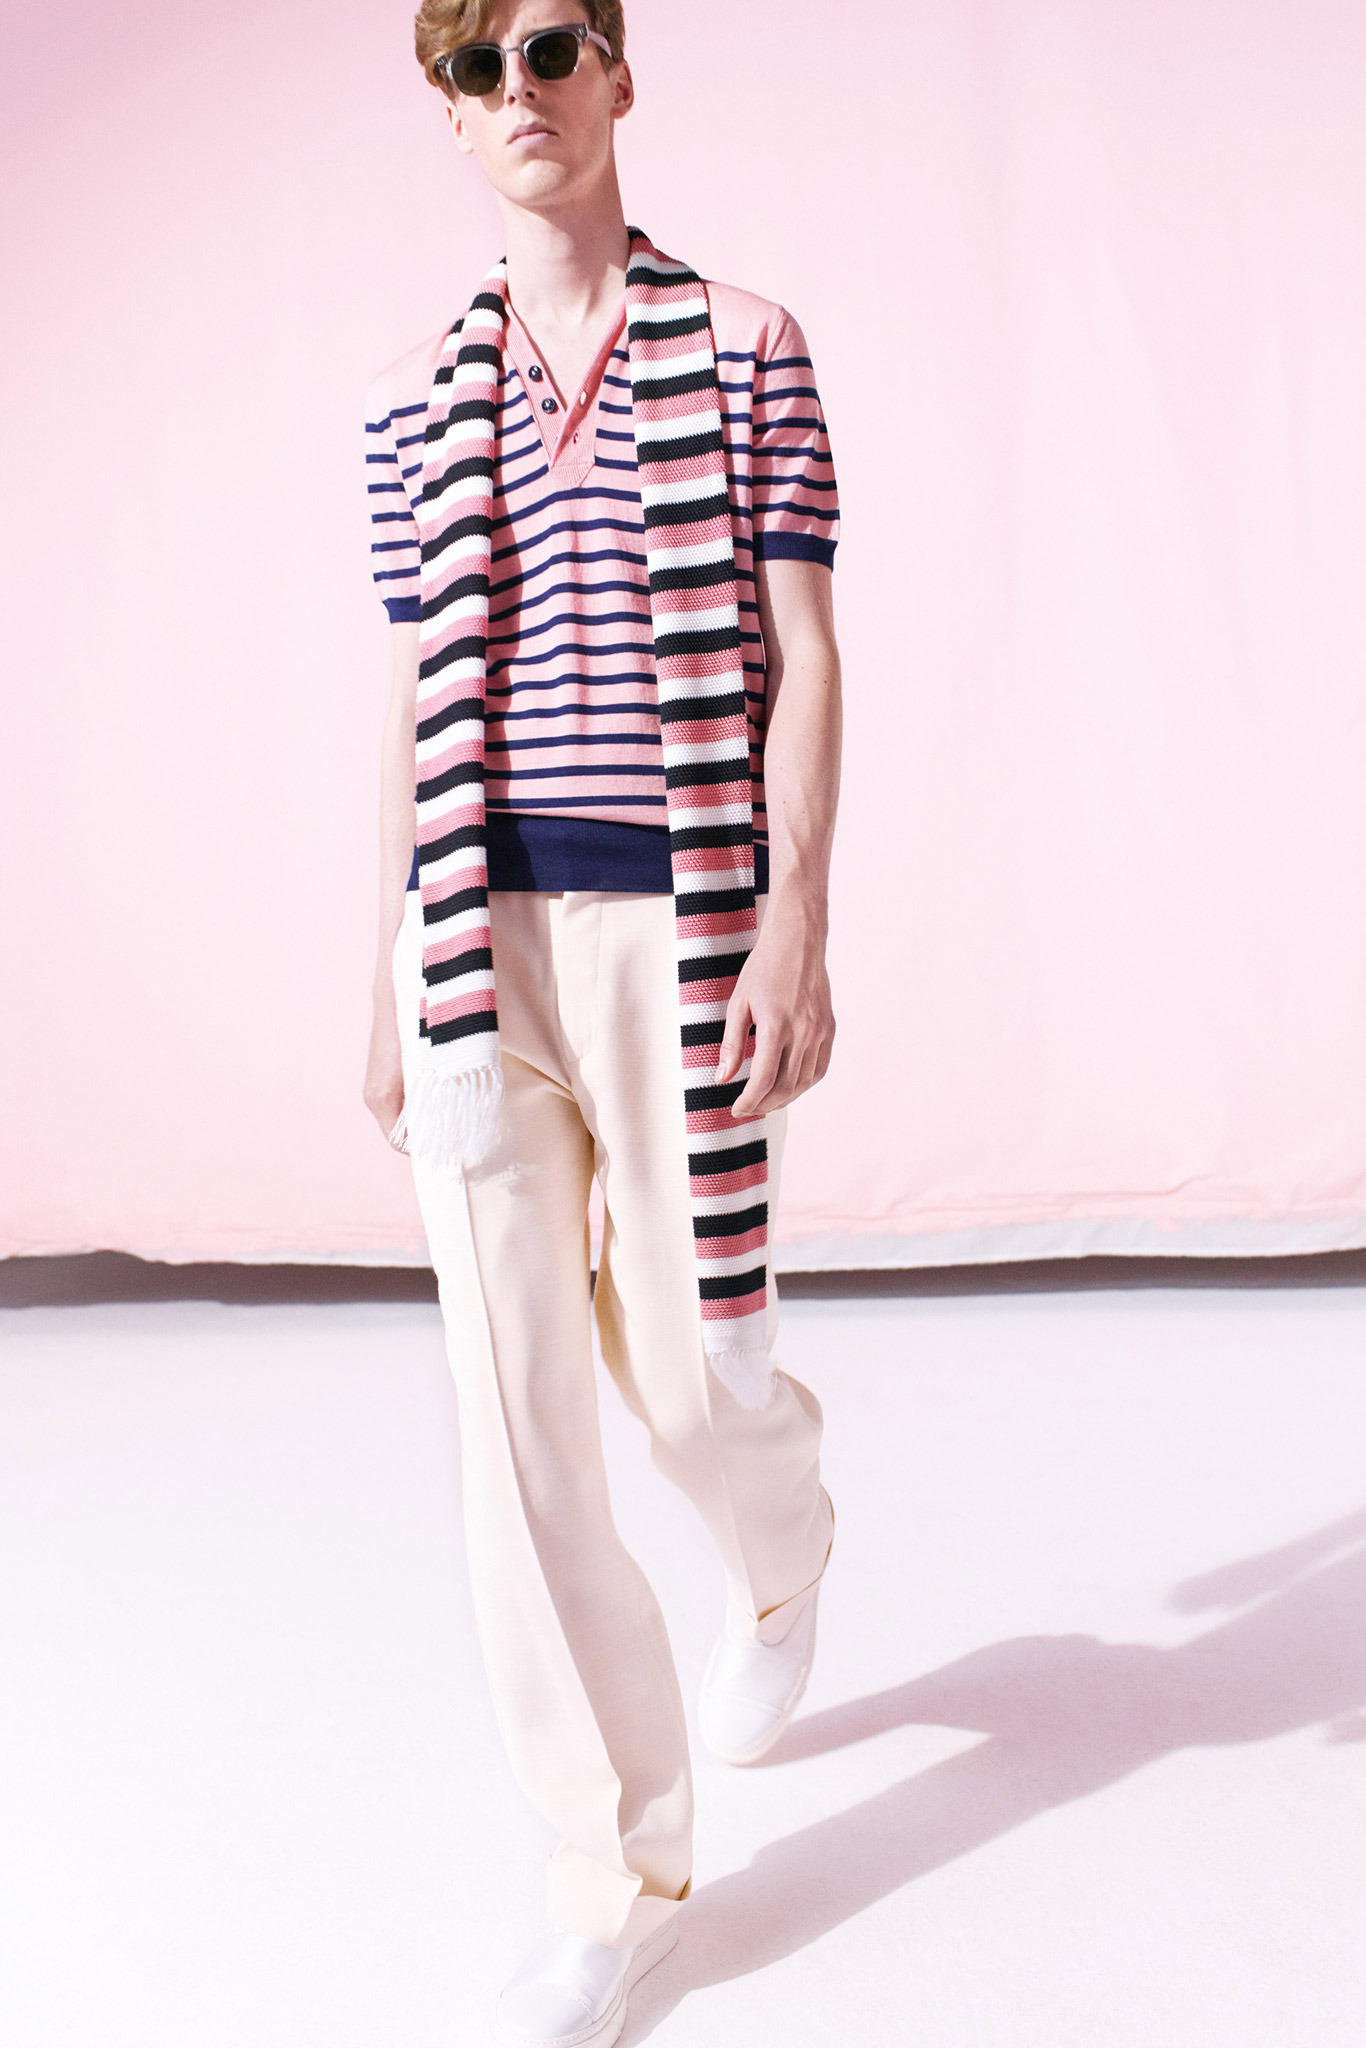 marc jacobs 2015 spring summer collection